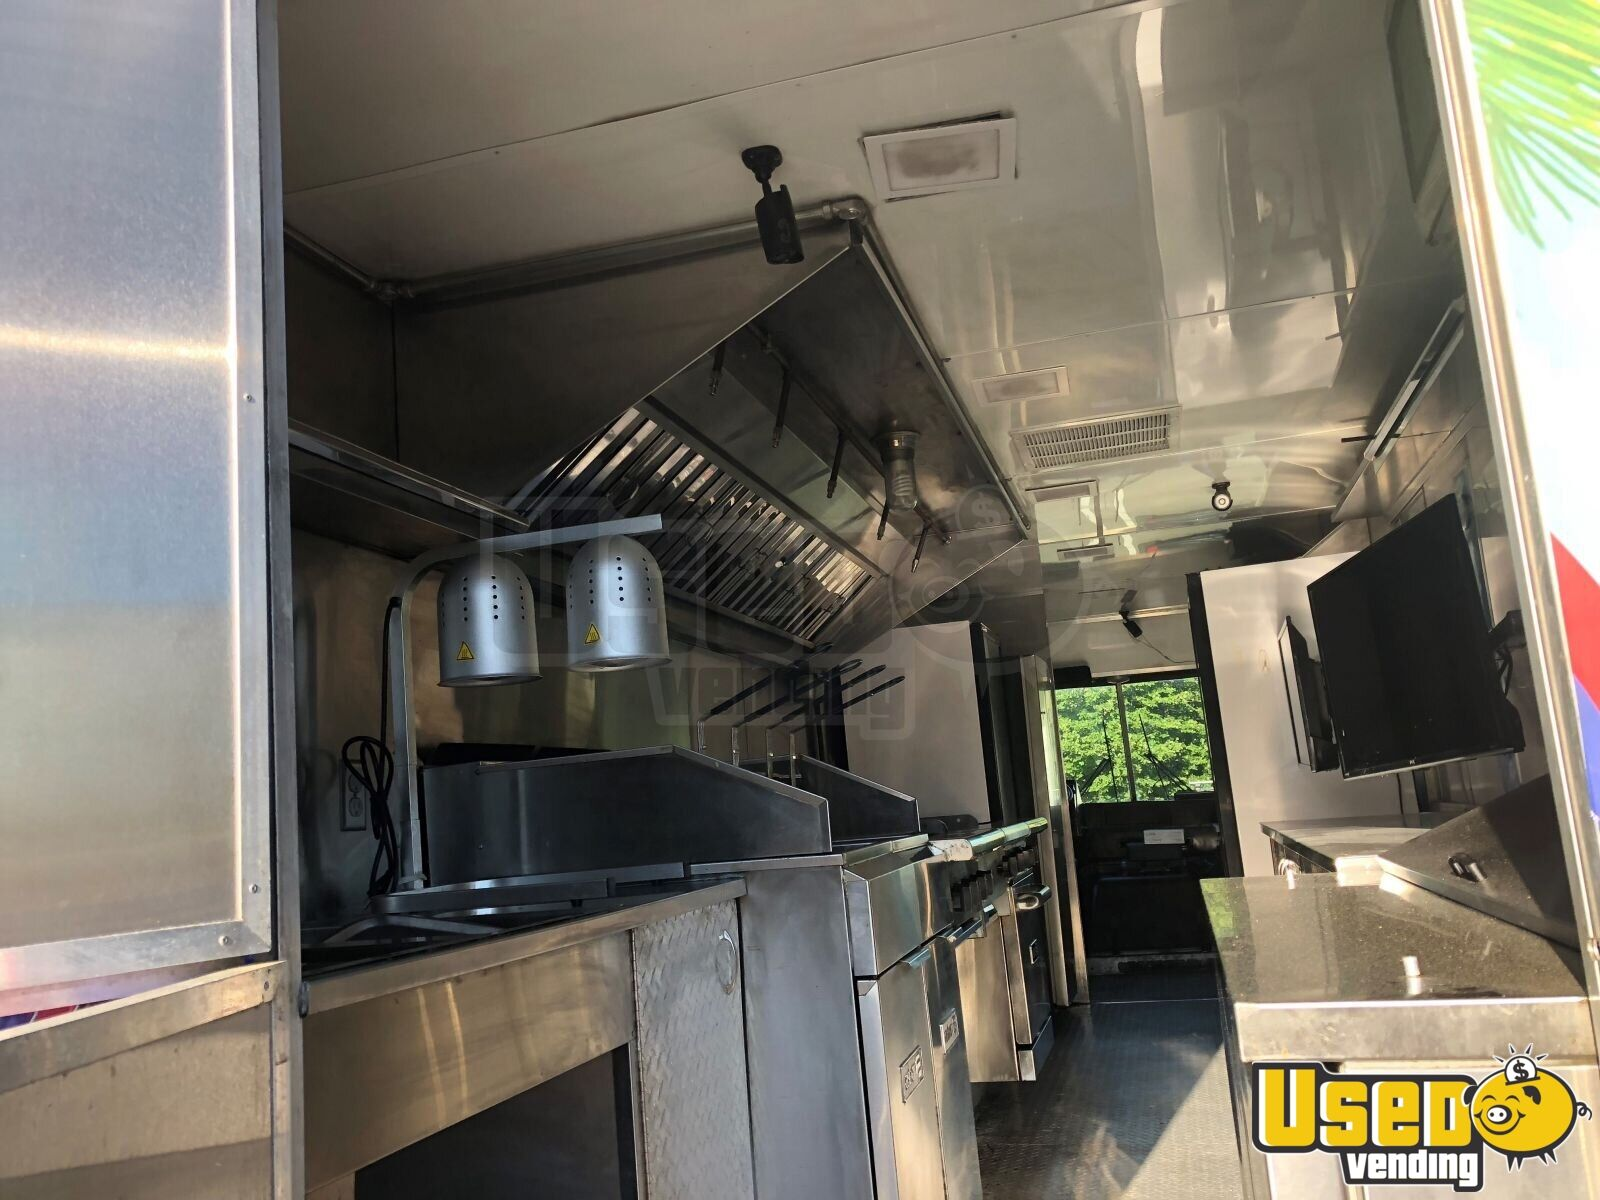 1999 Chevrolet P30 Step Van All-purpose Food Truck Prep Station Cooler Connecticut Diesel Engine for Sale - 11